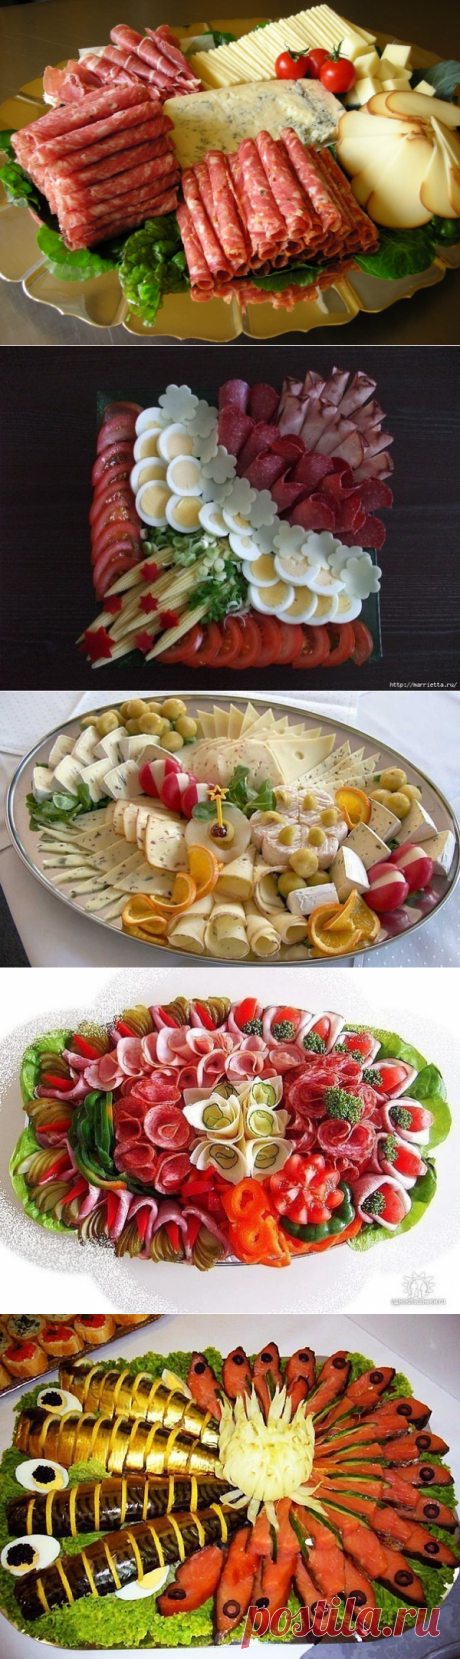 Ideas of cutting for a holiday table.